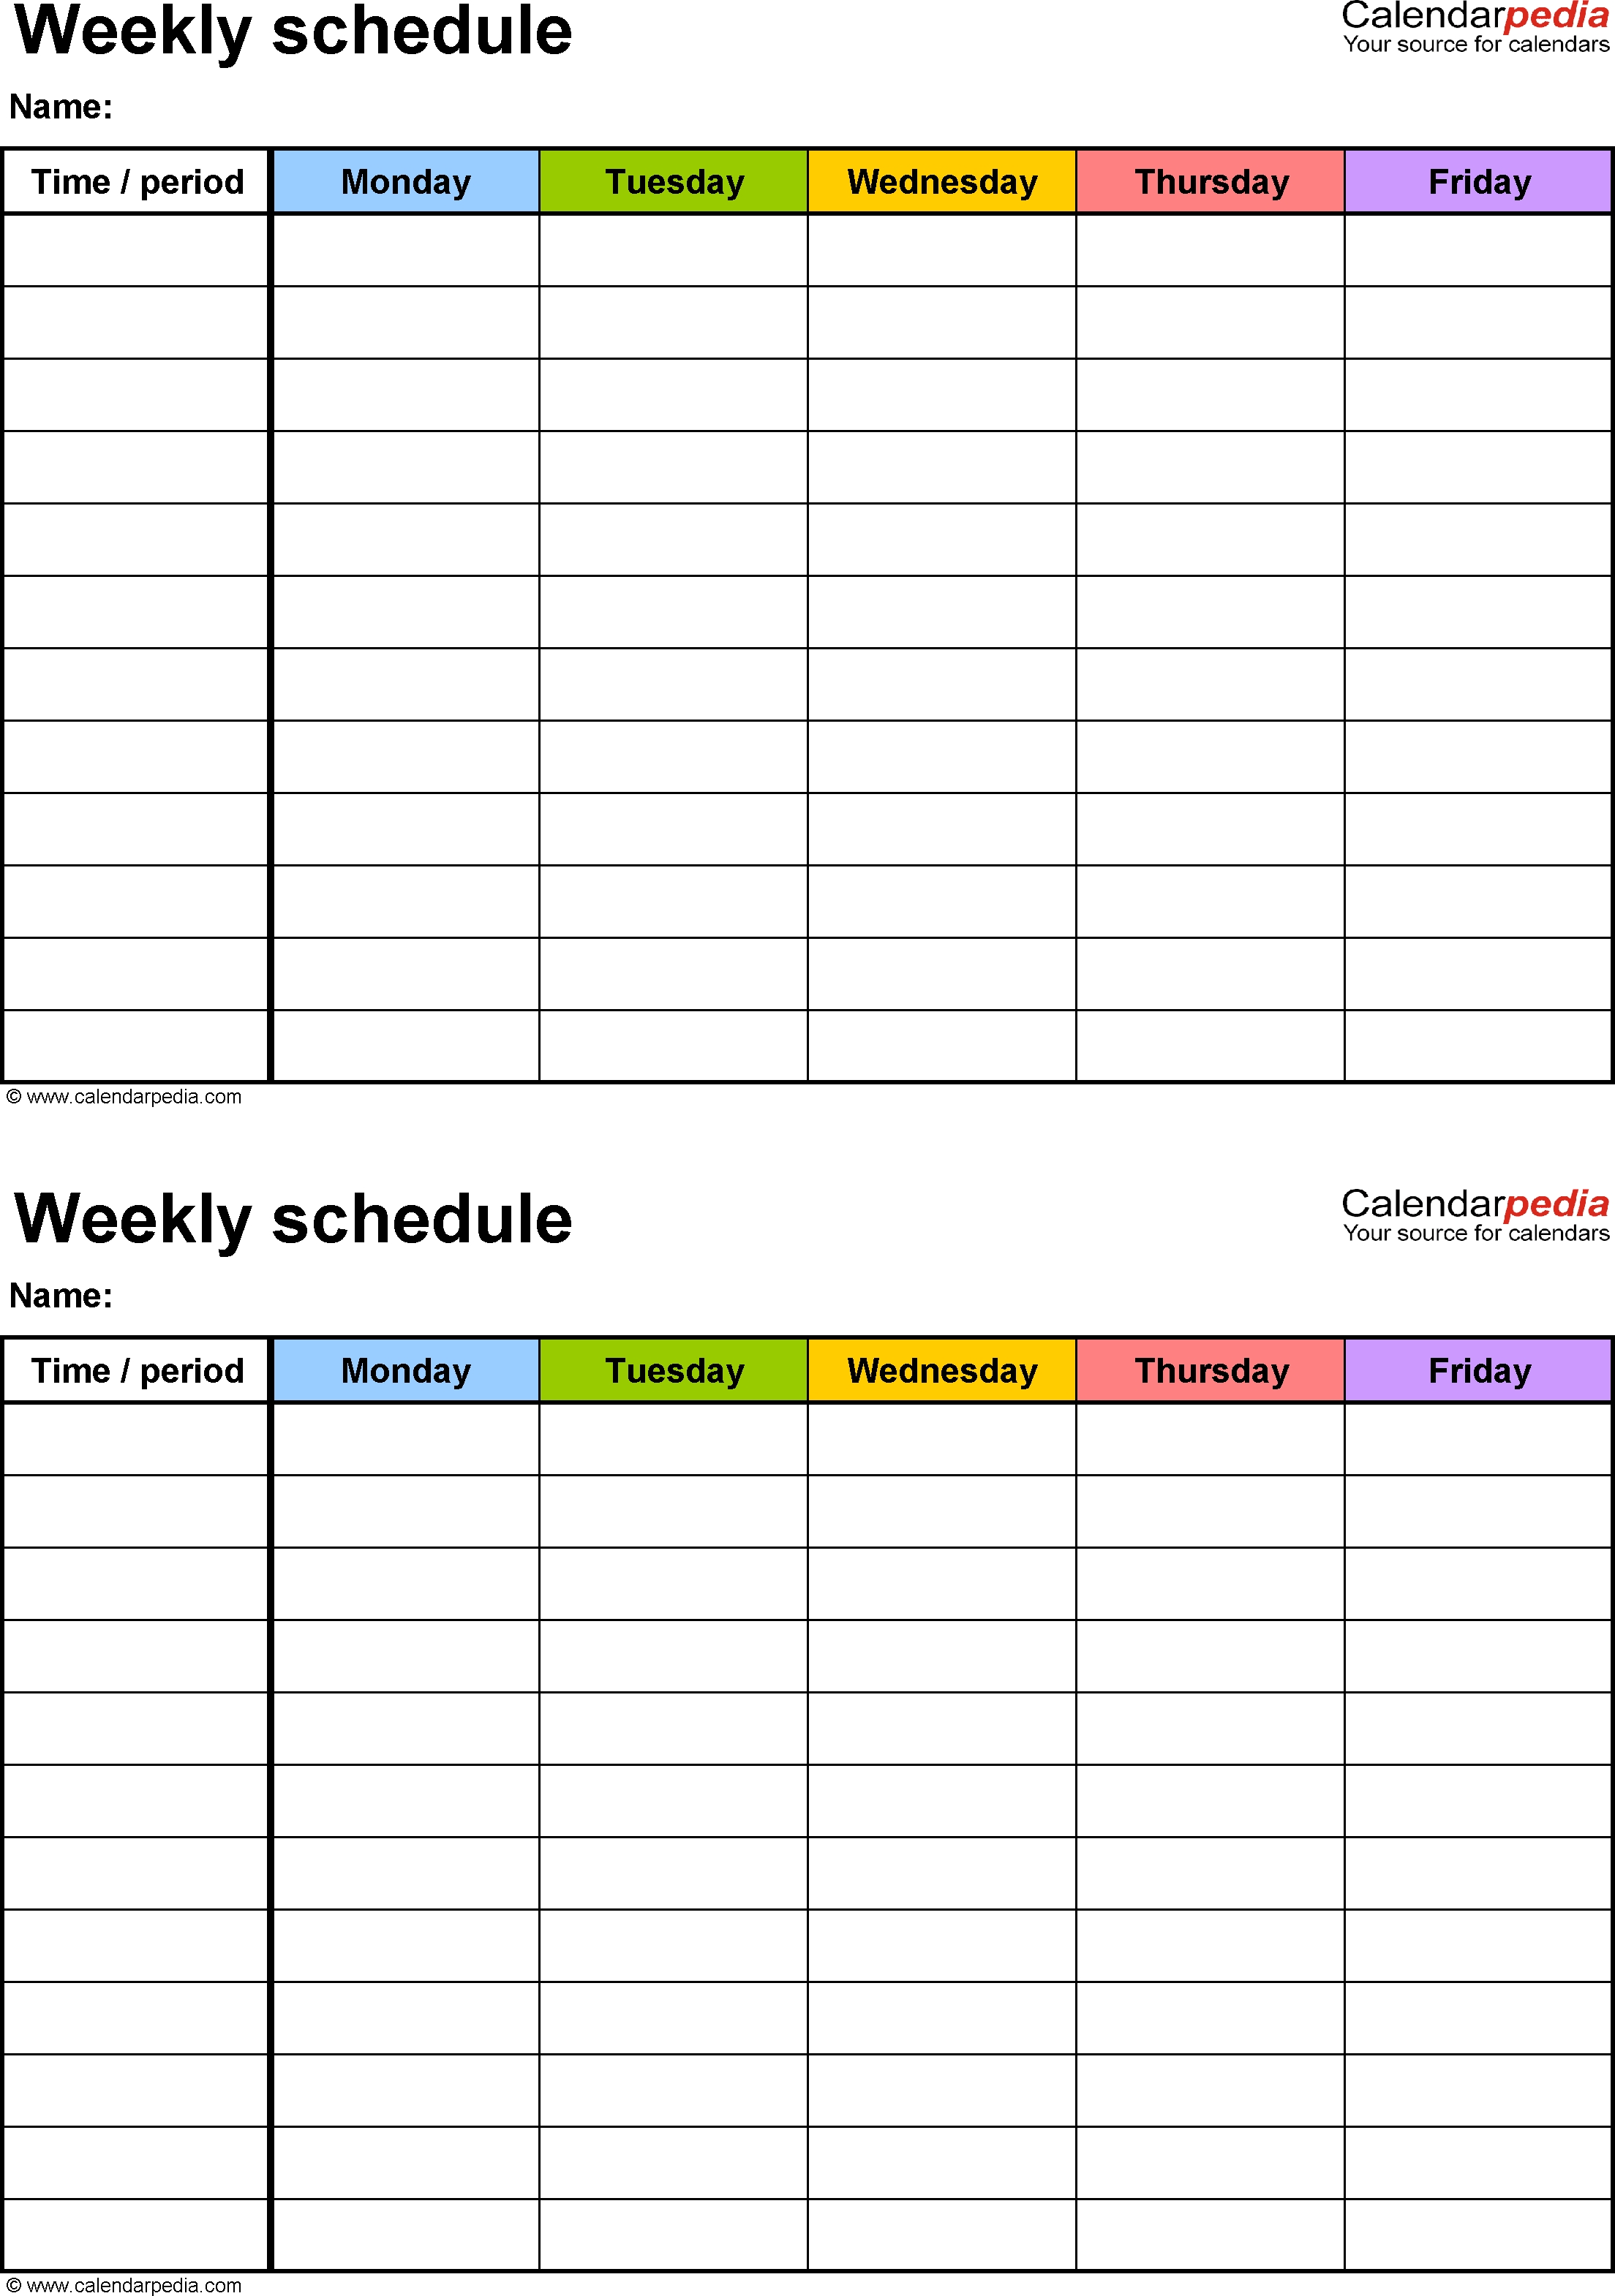 Free Weekly Schedule Templates For Word - 18 Templates within Monday To Friday Planner Template